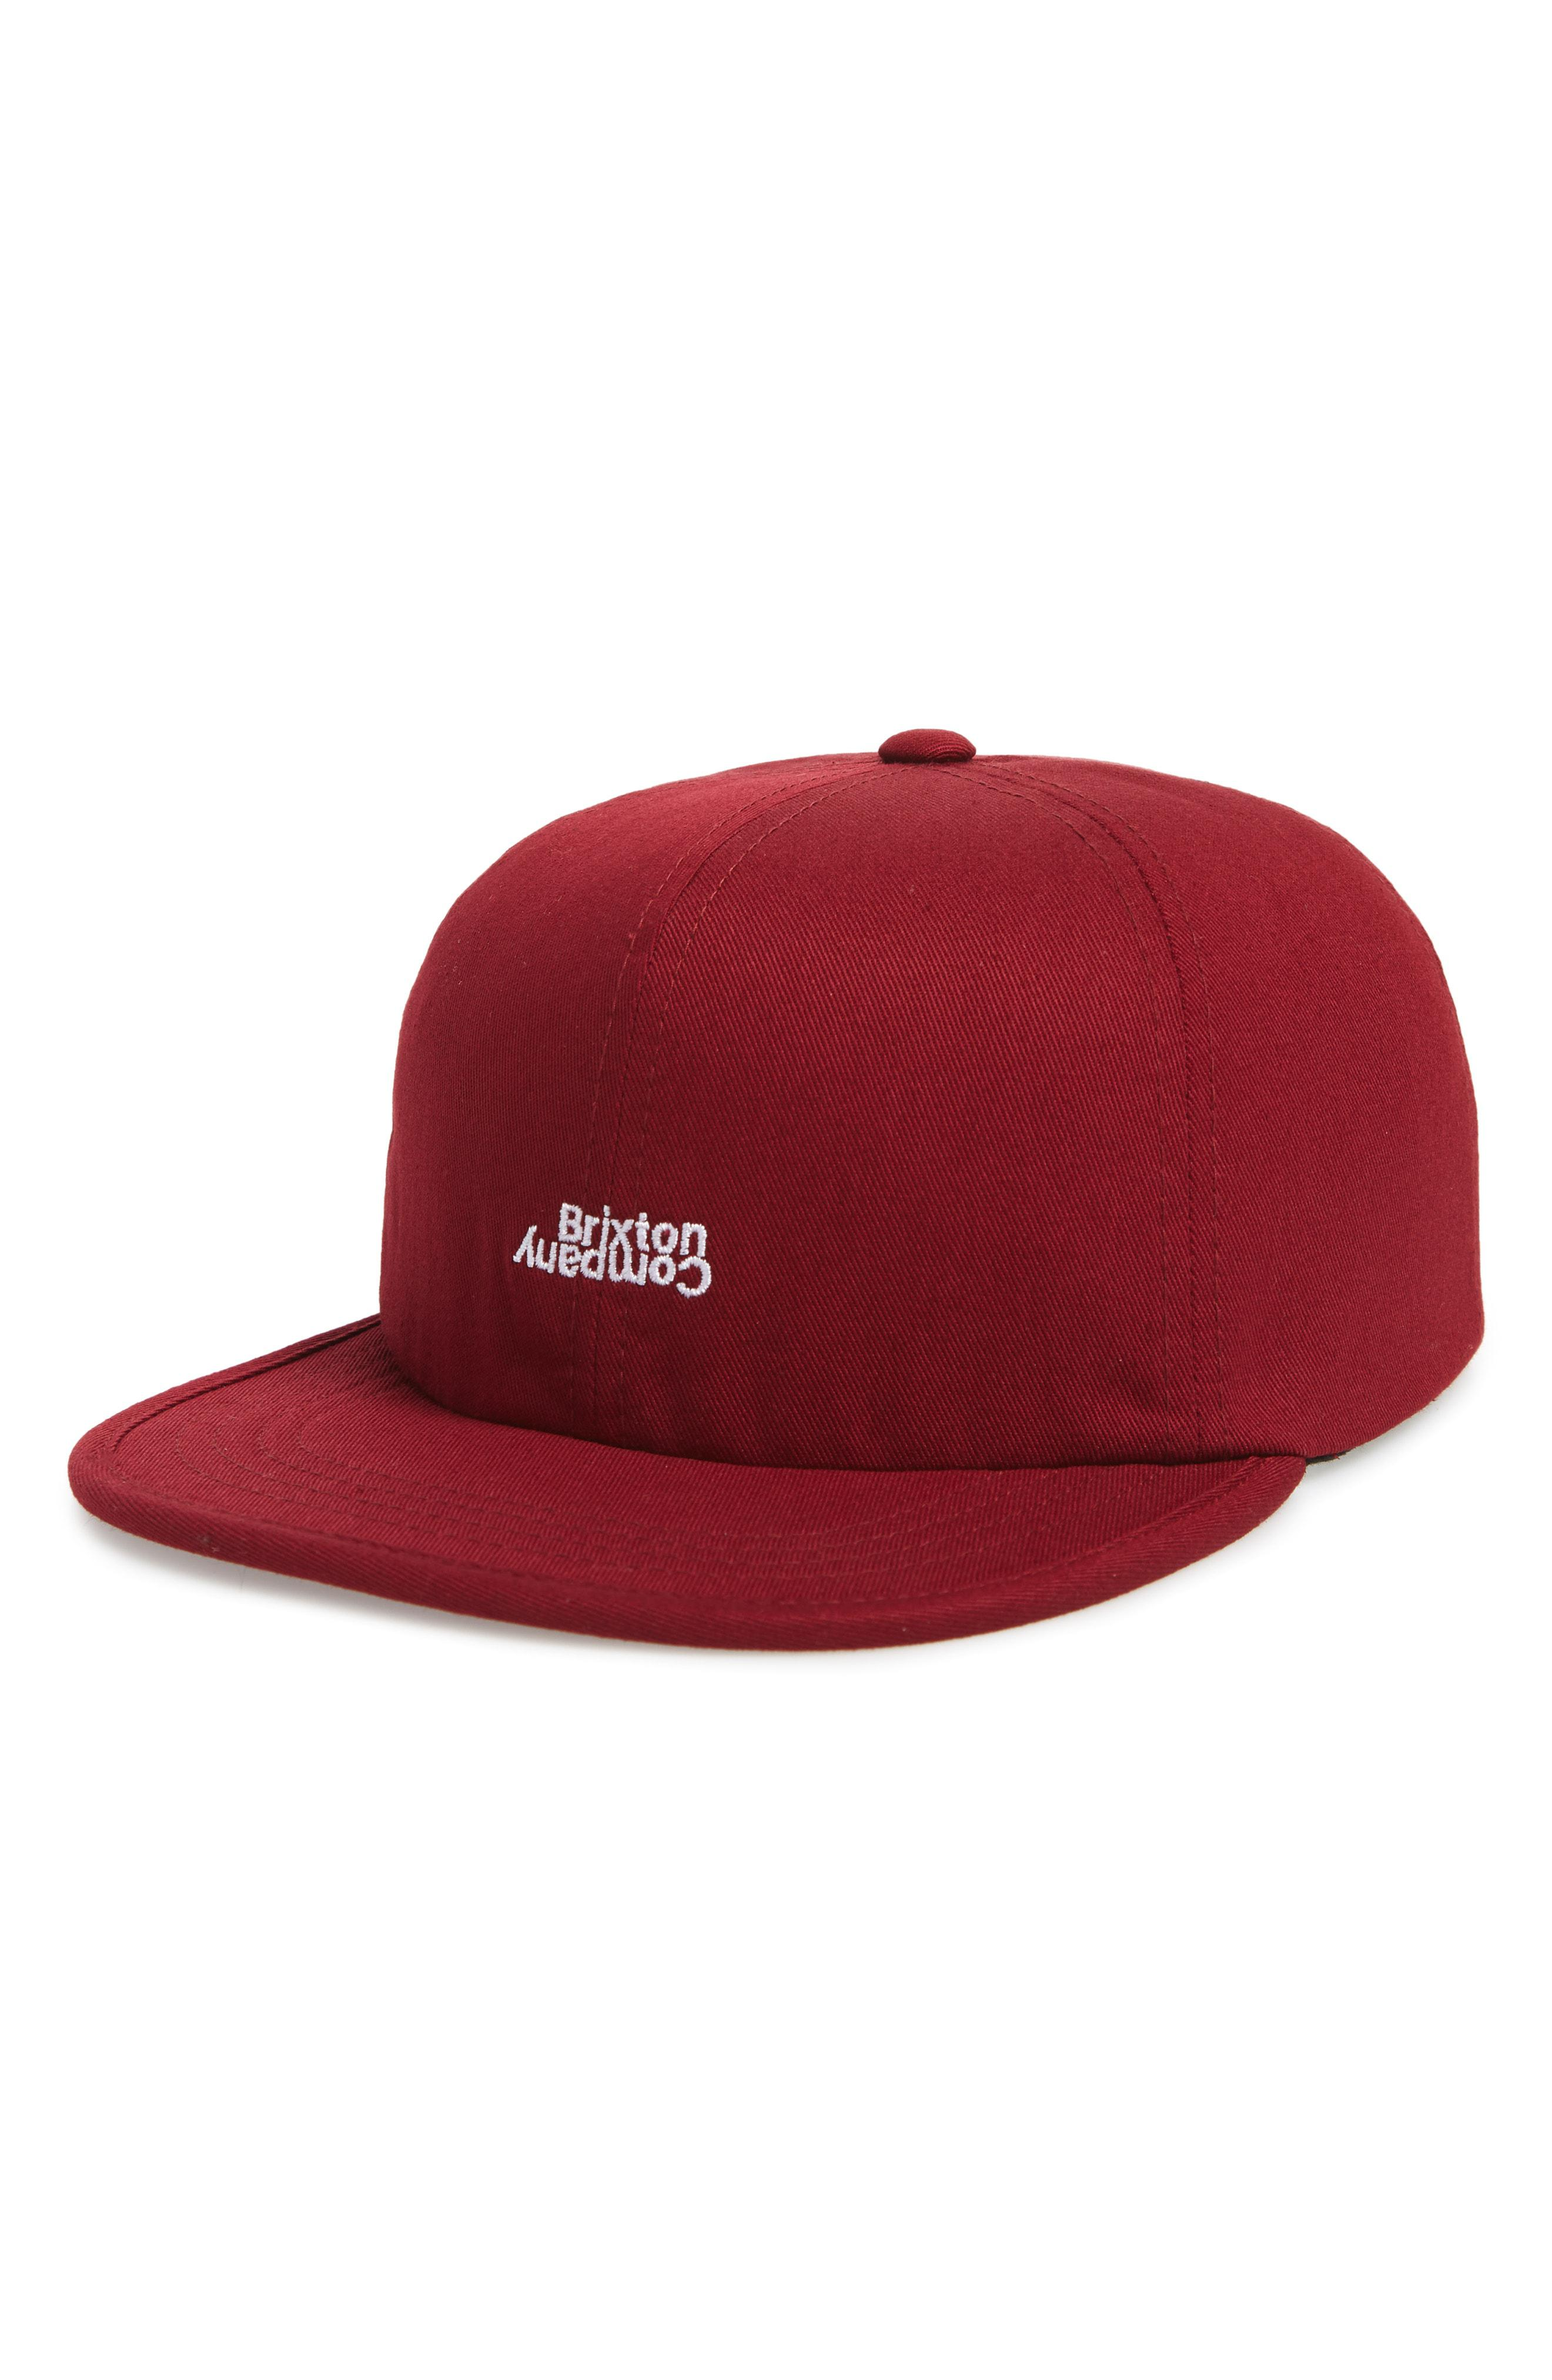 Lyst - Brixton Revert Embroidered Logo Cap in Red for Men 1089260a834b